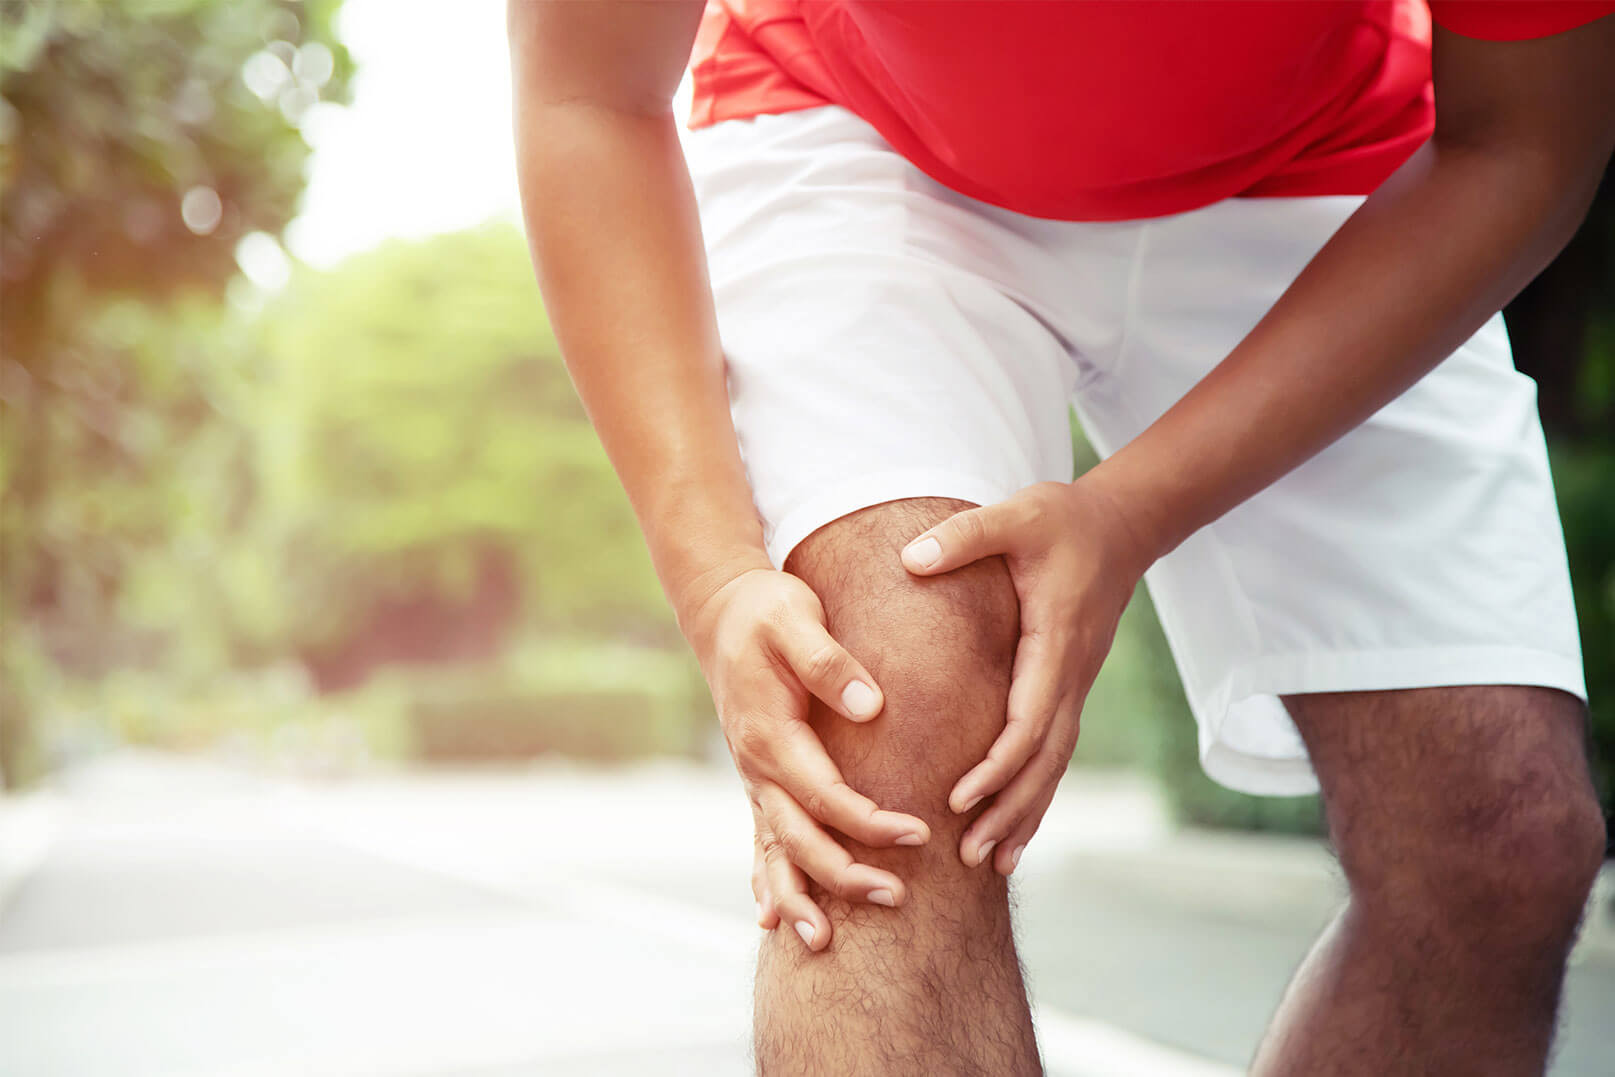 Treatment of sprains